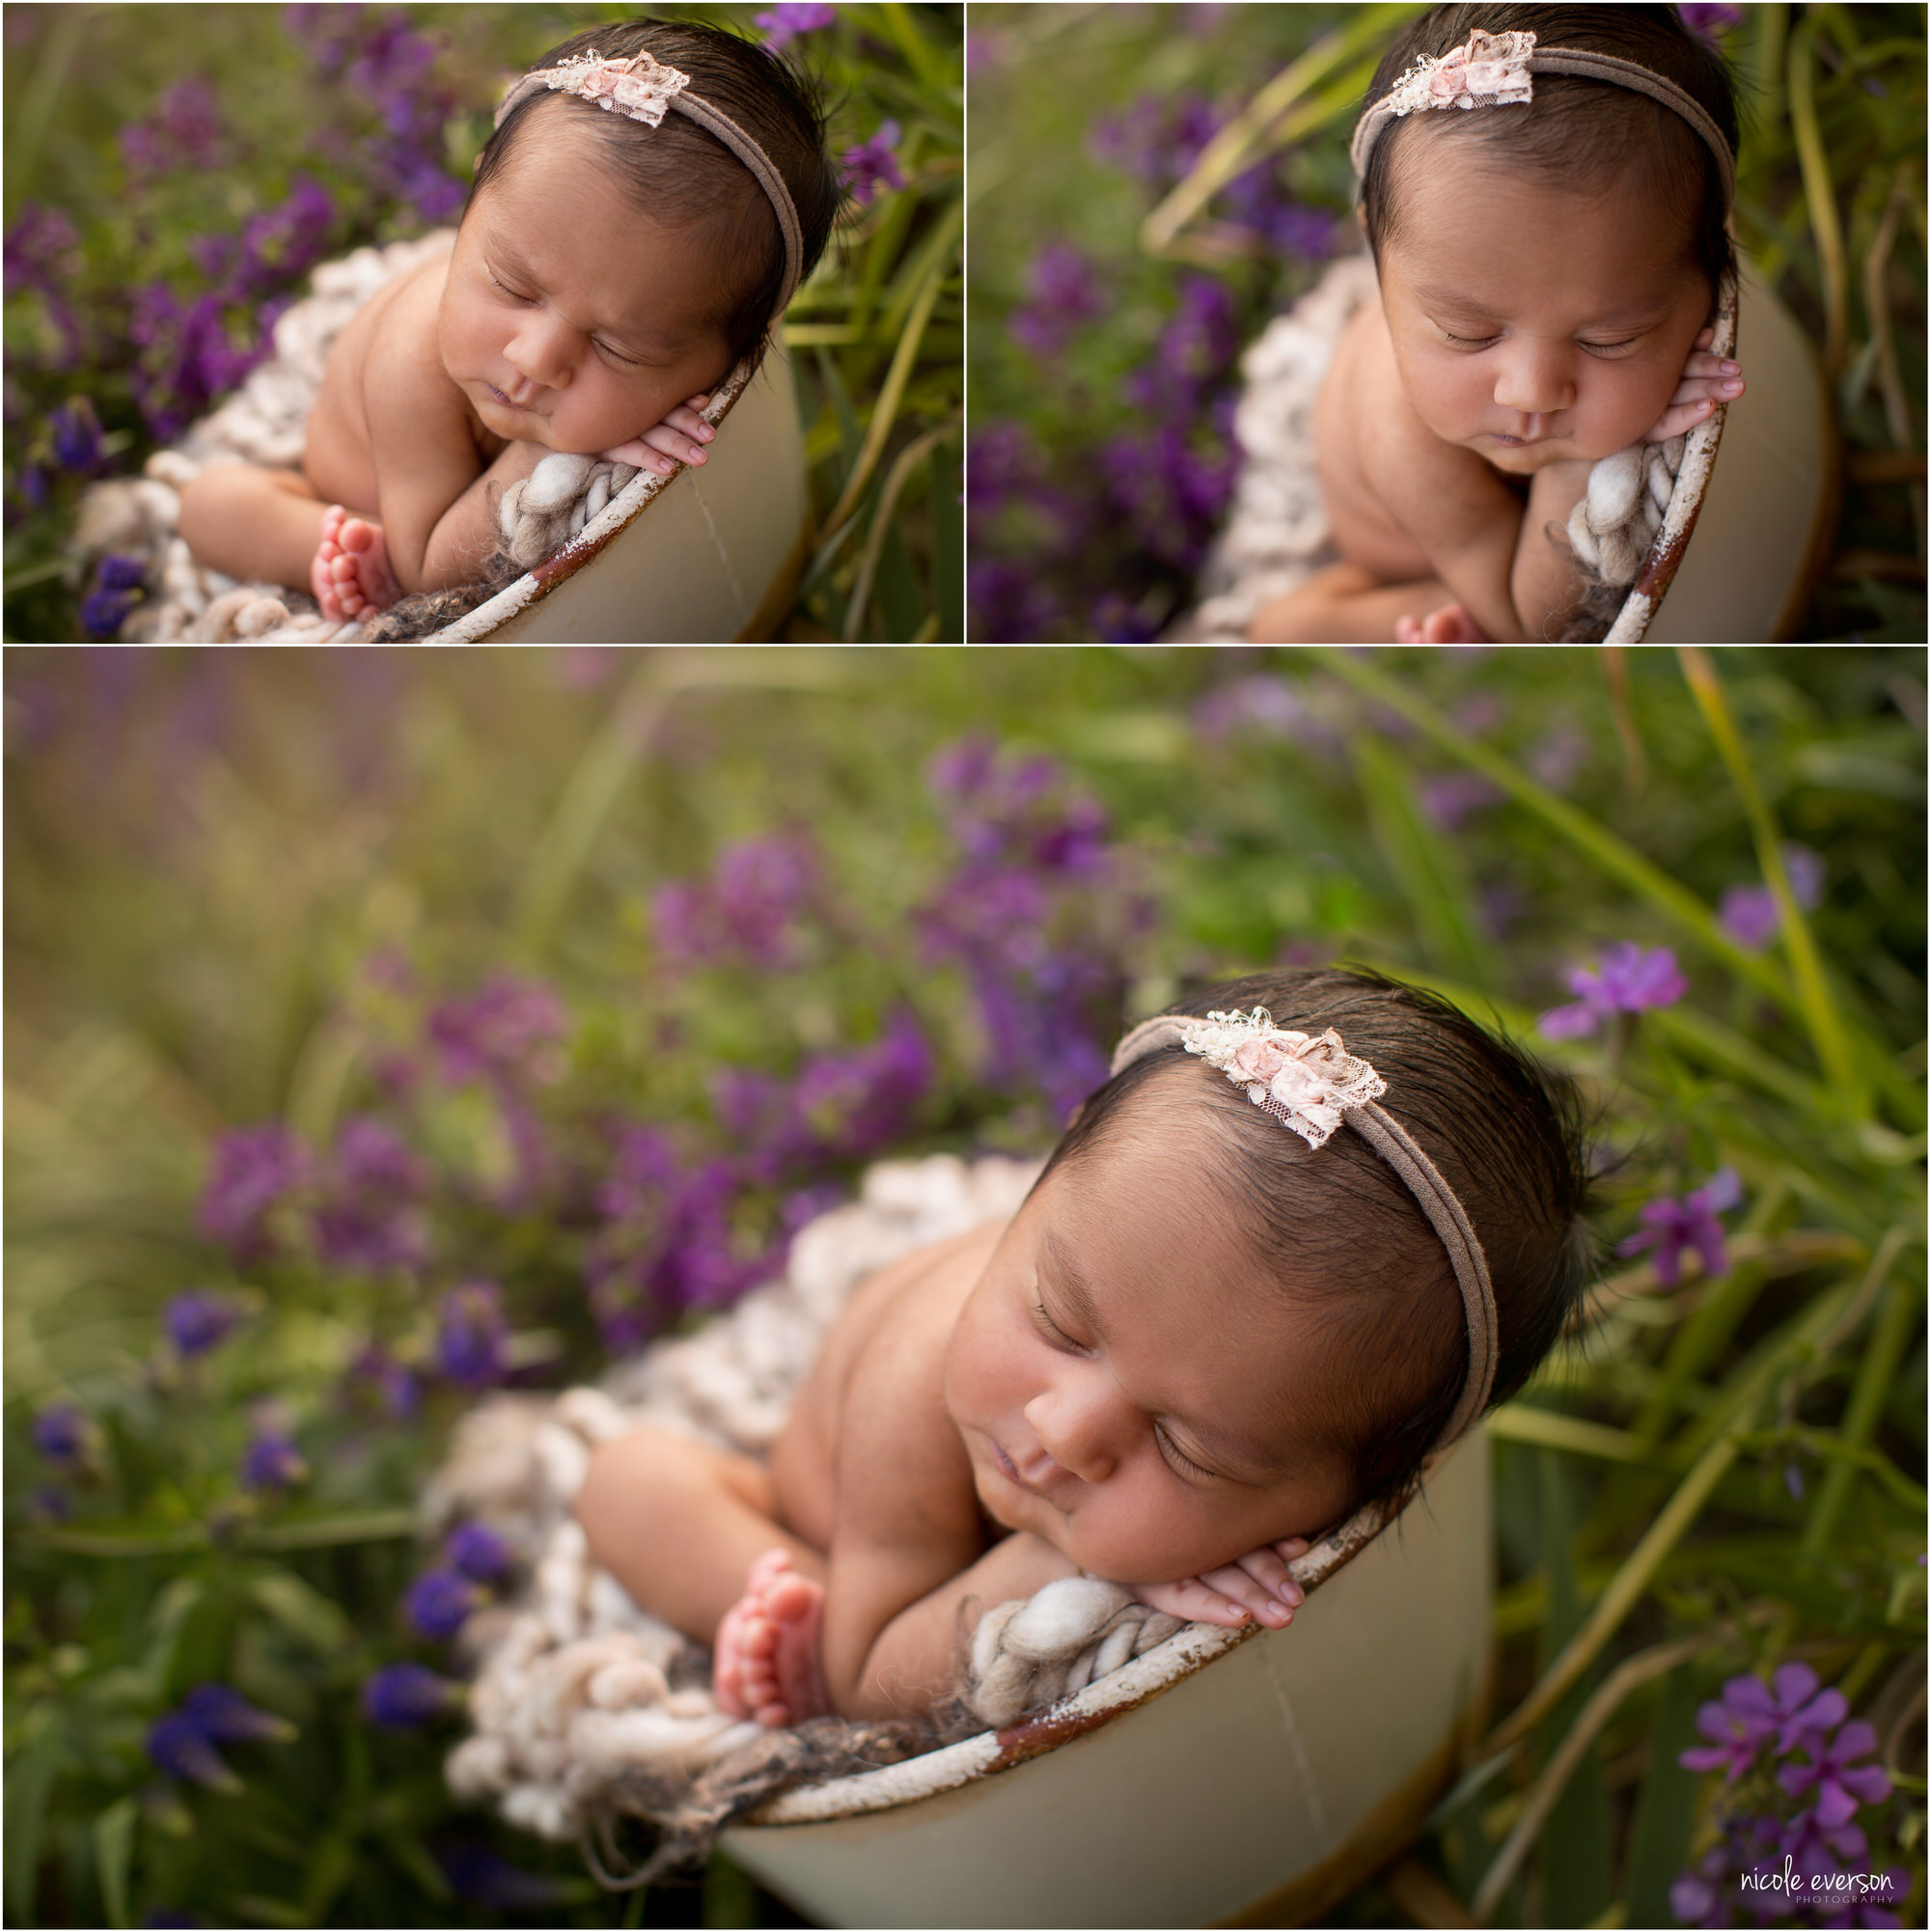 Newborn baby girl in a pink headband, snuggled in a bowl and surrounded by wildflowers. Tallahassee newborn photography. Nicole Everson Photography.